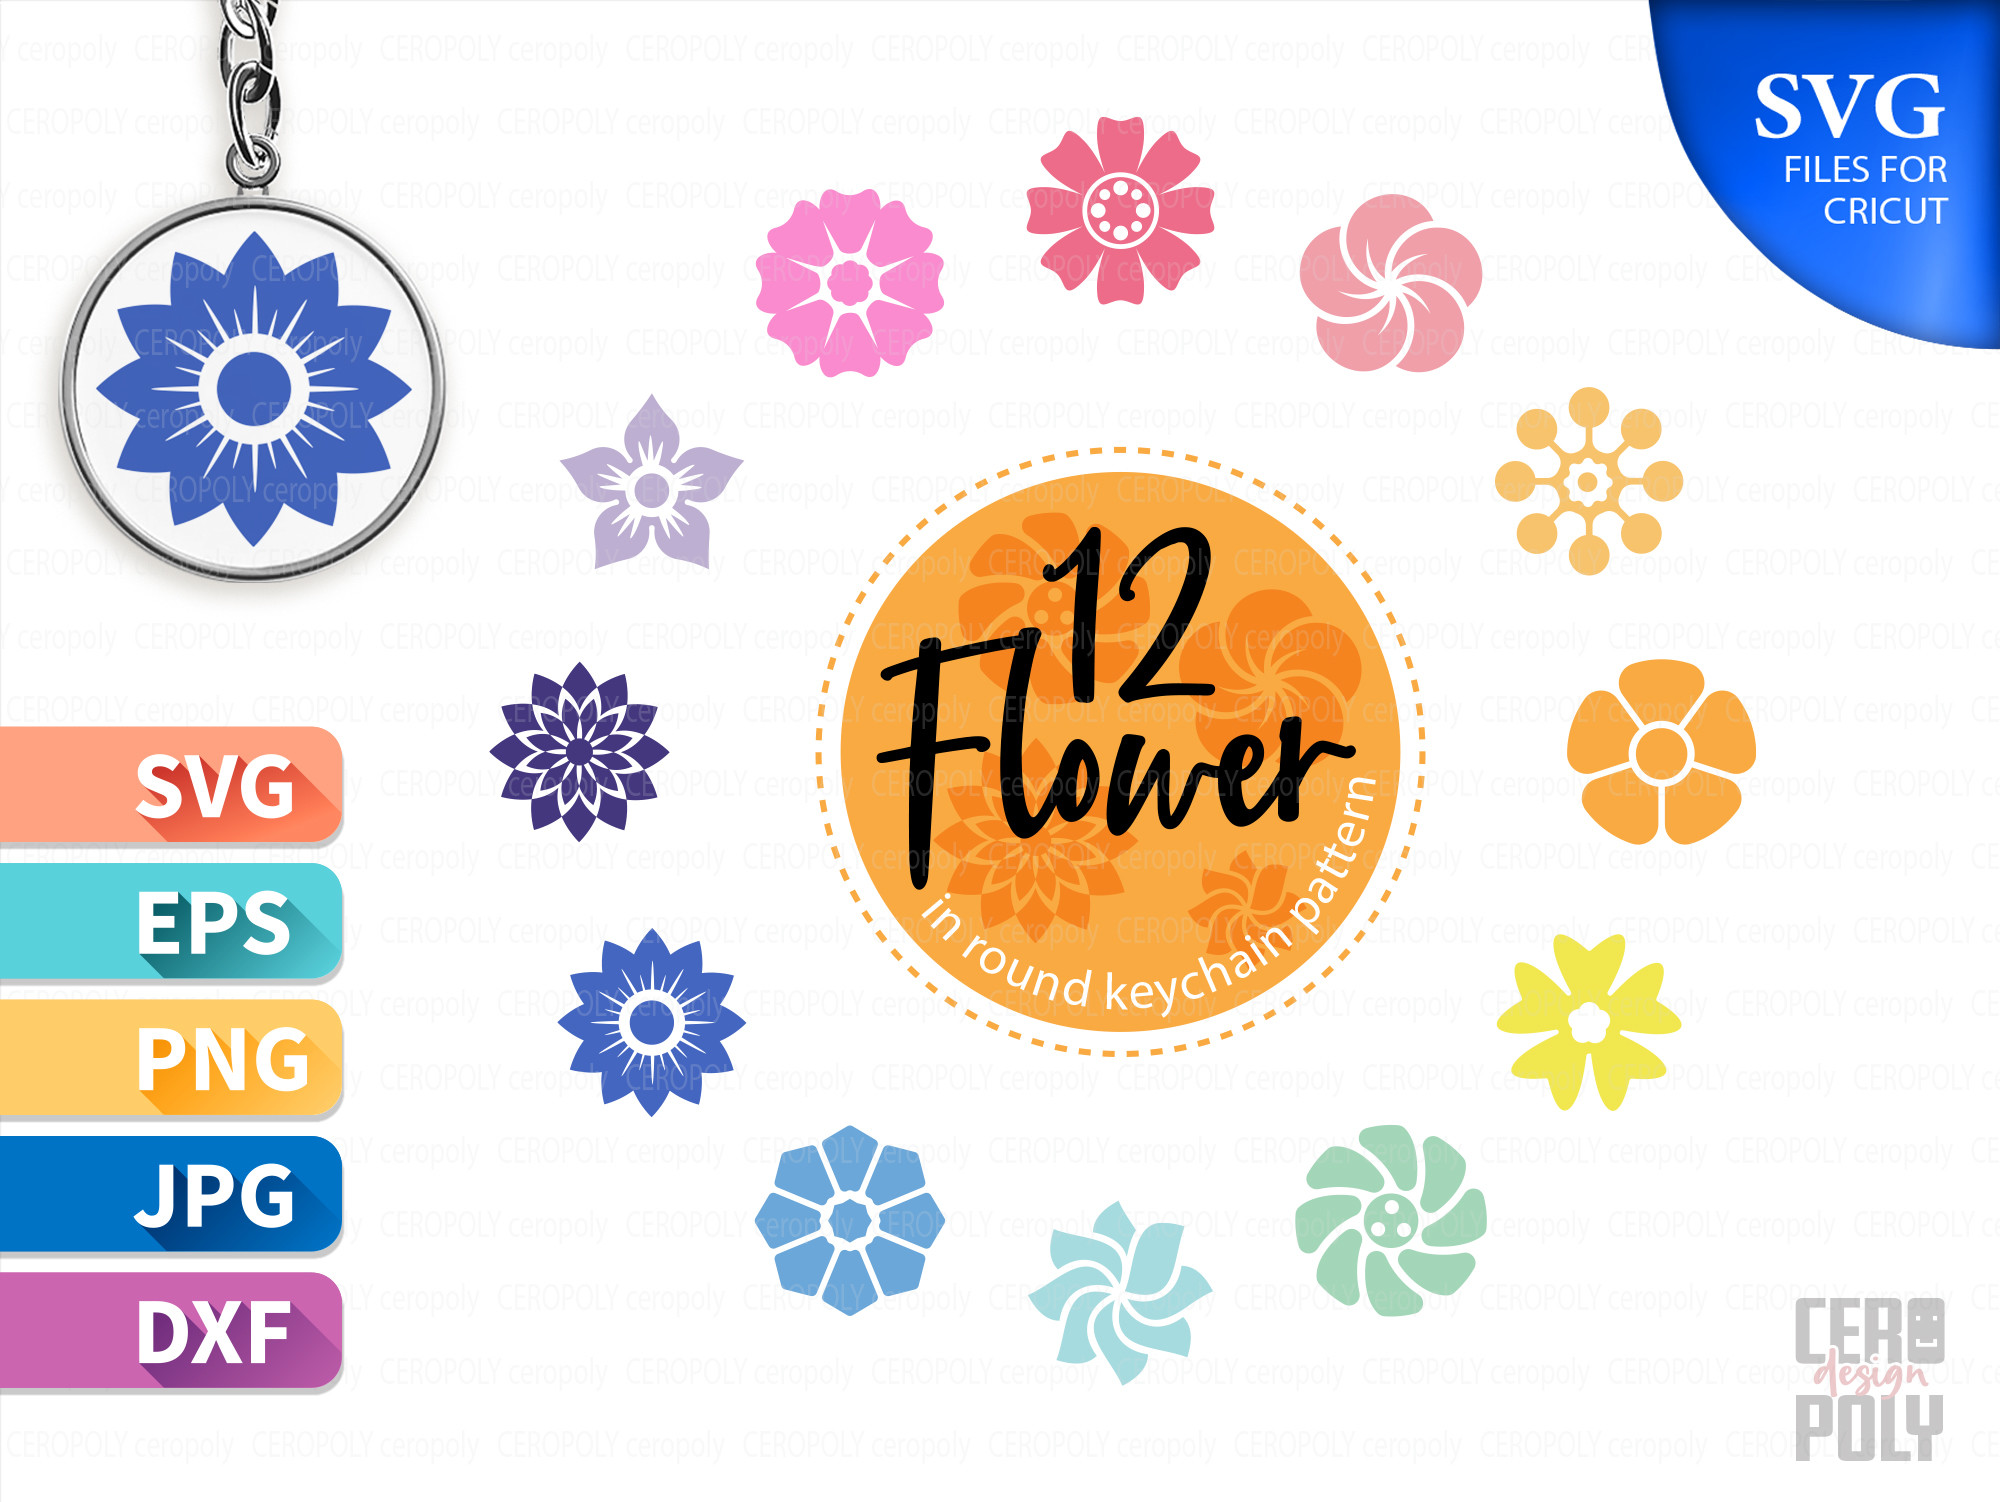 Keychain Flower Patter Circle SVG File